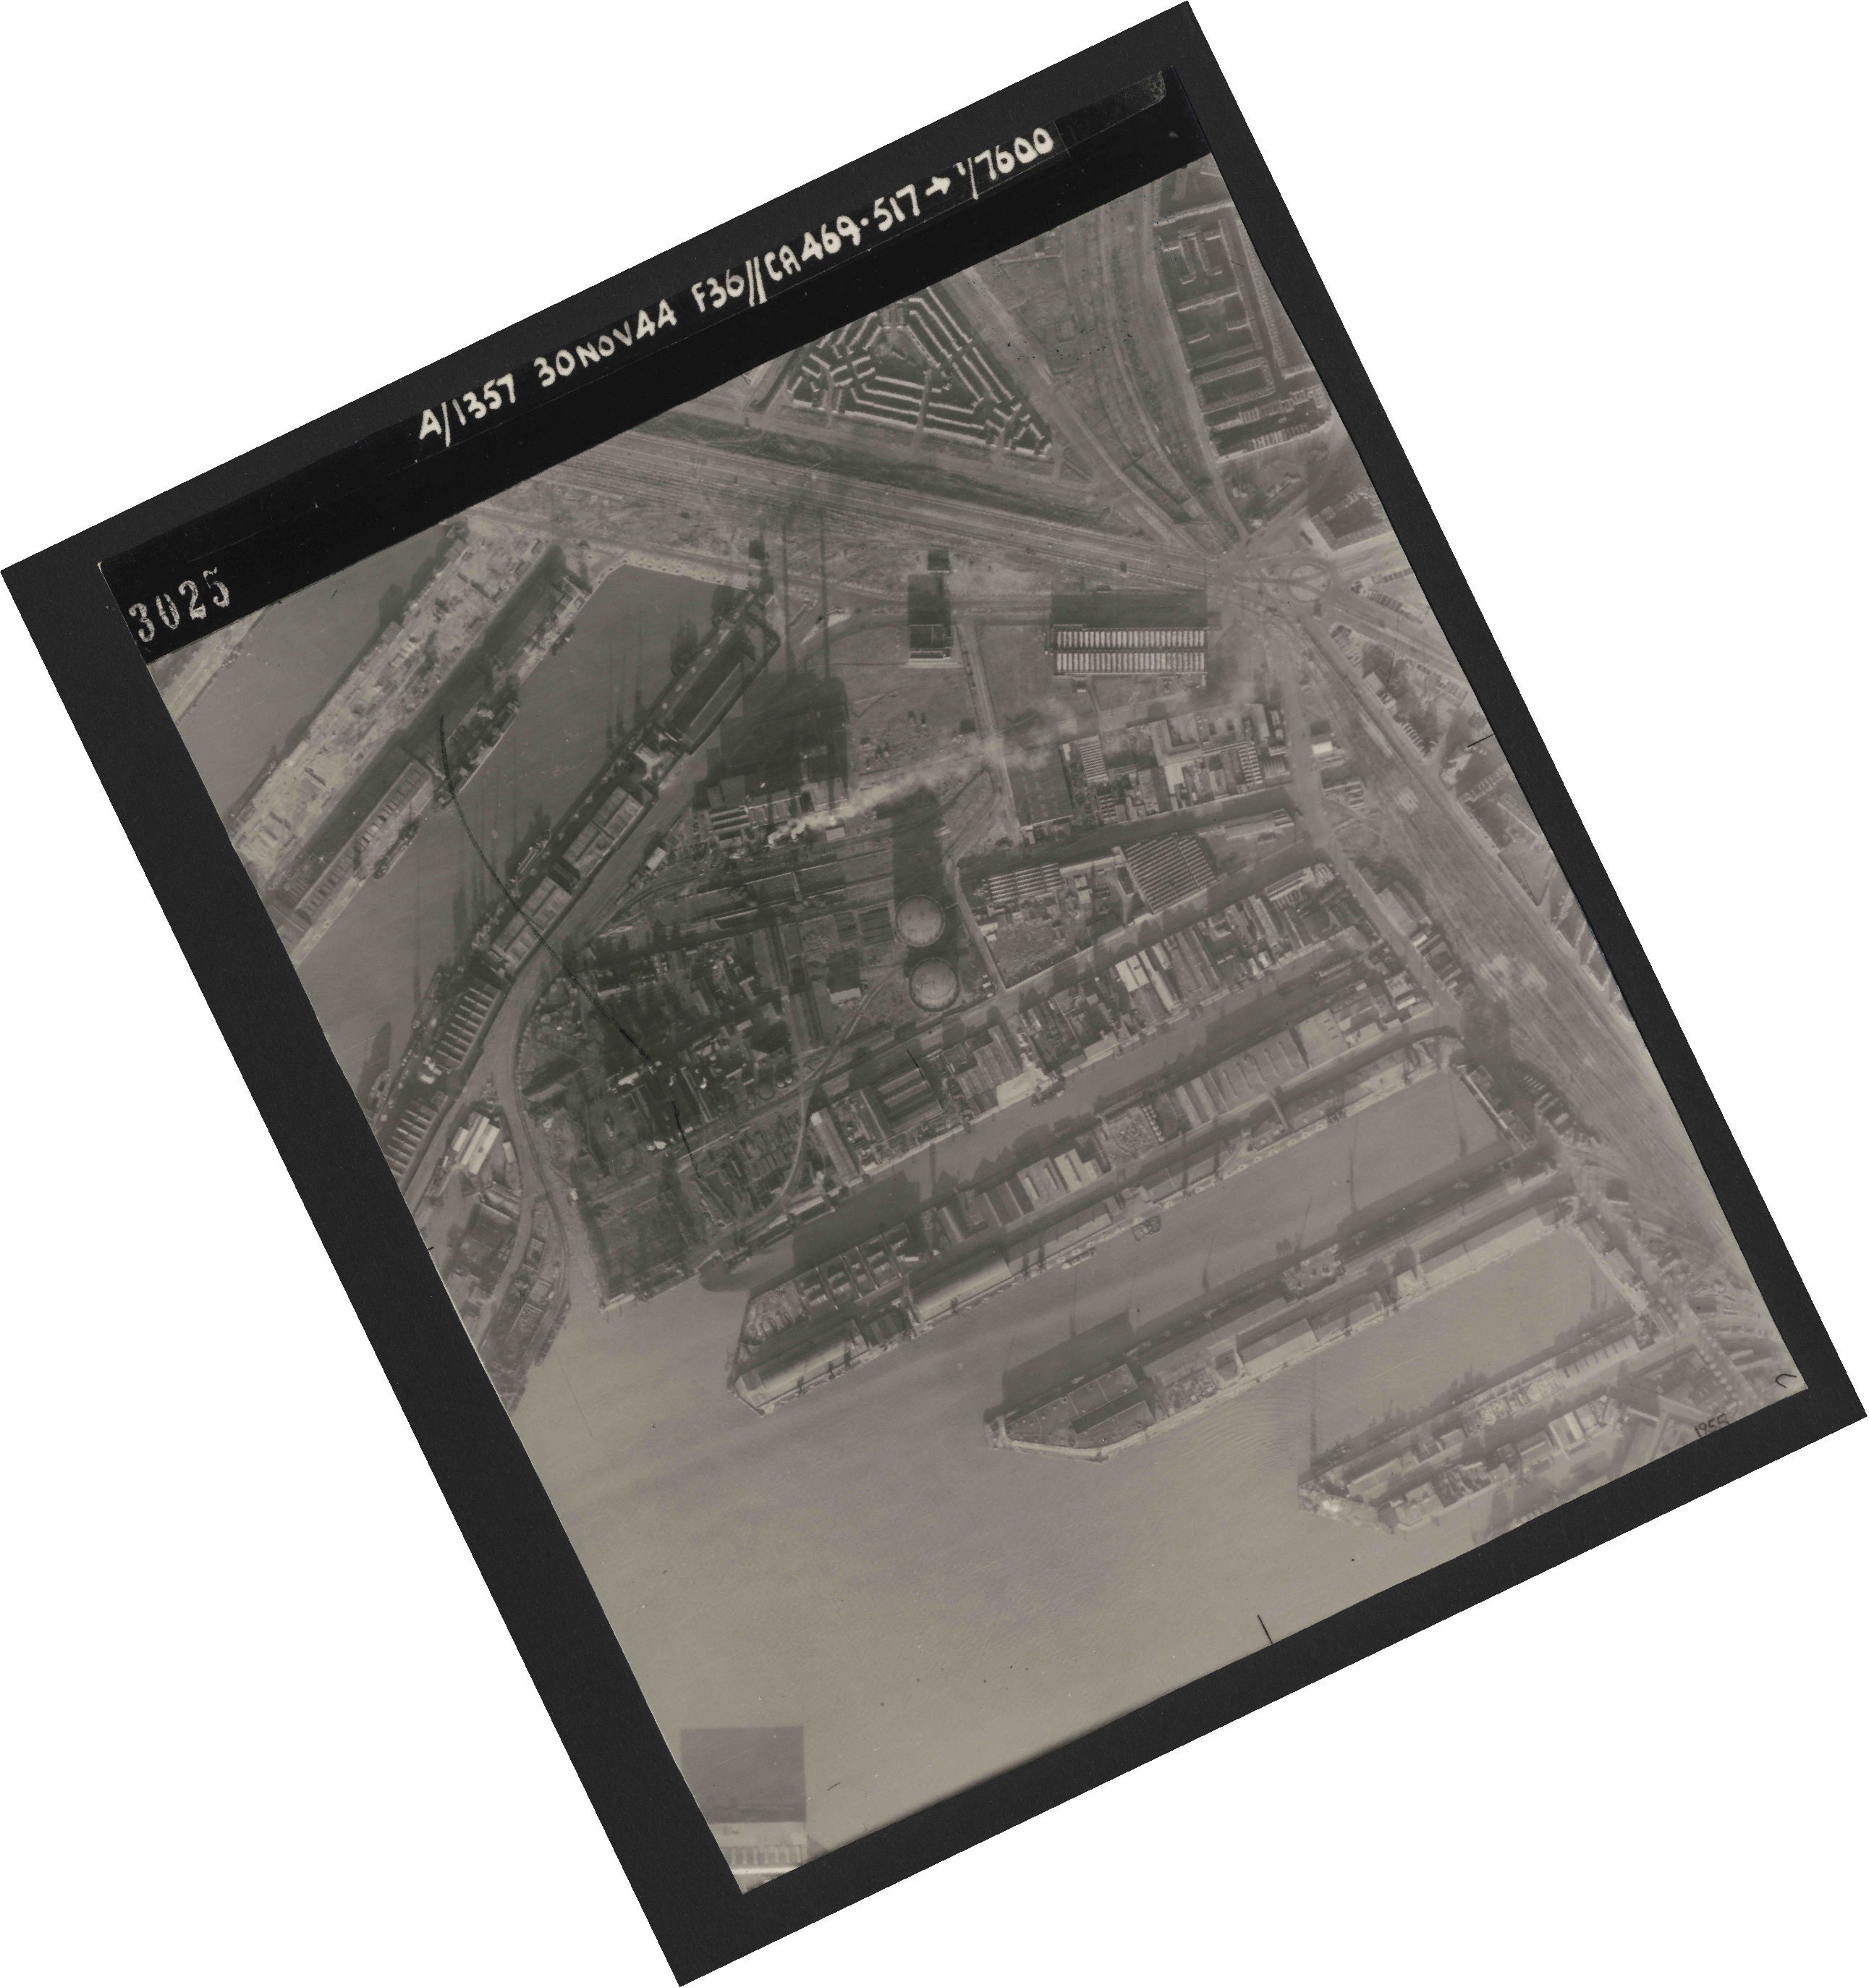 Collection RAF aerial photos 1940-1945 - flight 259, run 03, photo 3025